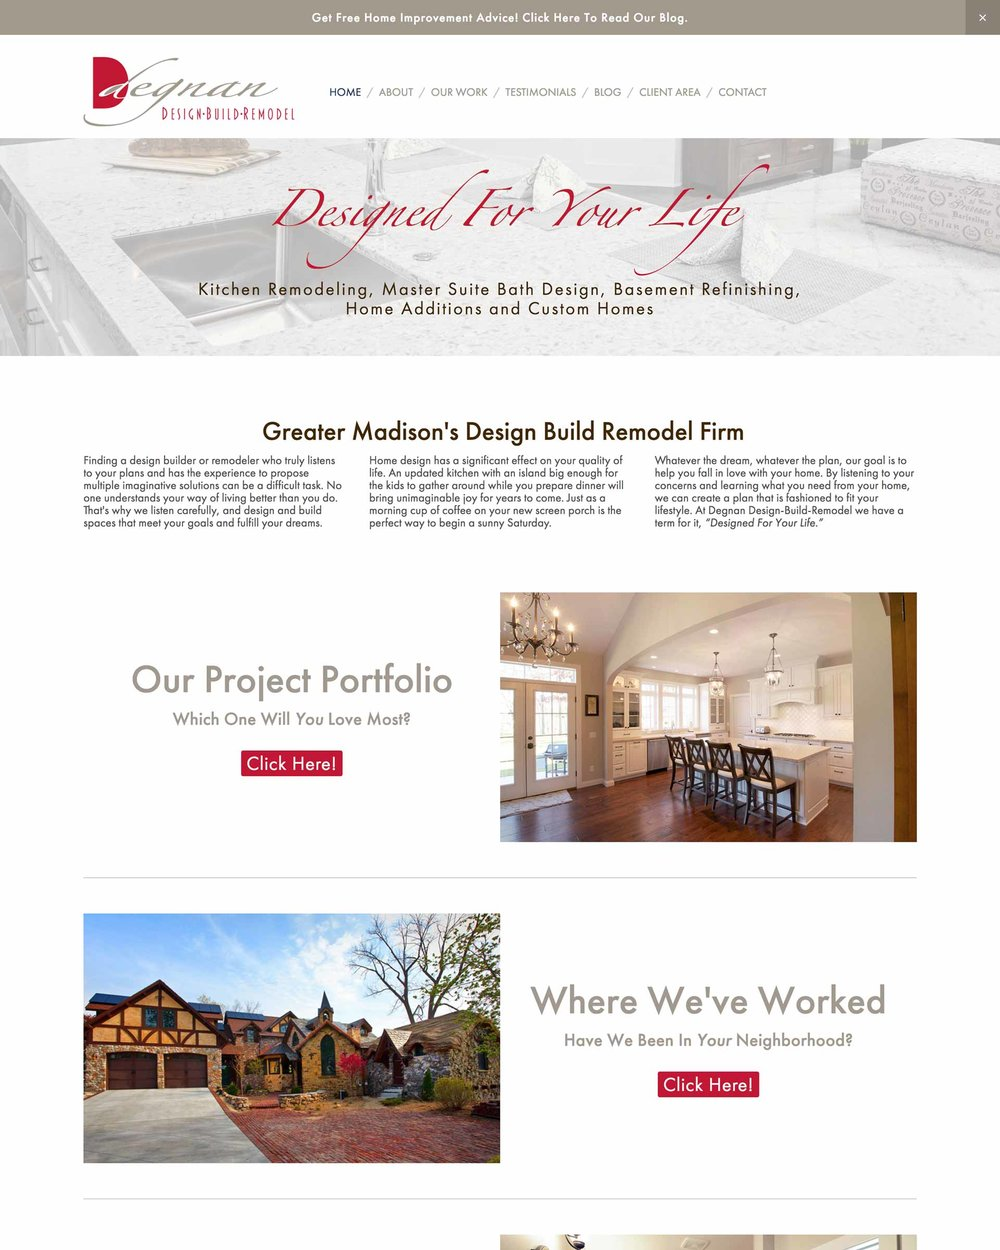 Degnan Design-Build-Remodel - A Second-Generation Family-Owned Residential Design-Build Firm